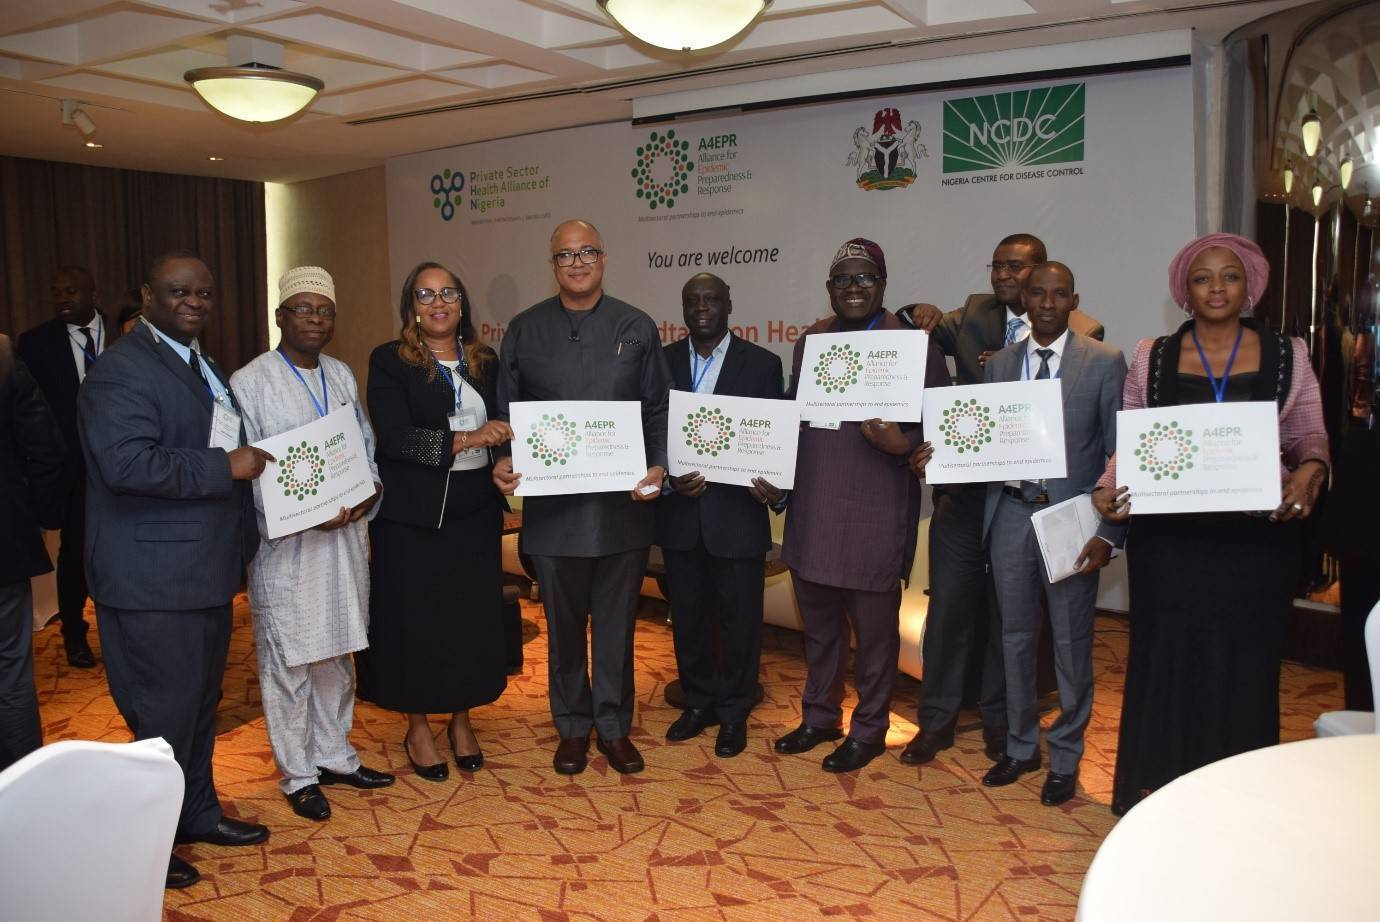 NCDC Chief Executive and the NCDC/WHO/AFENET Team at the launch of A4EPR